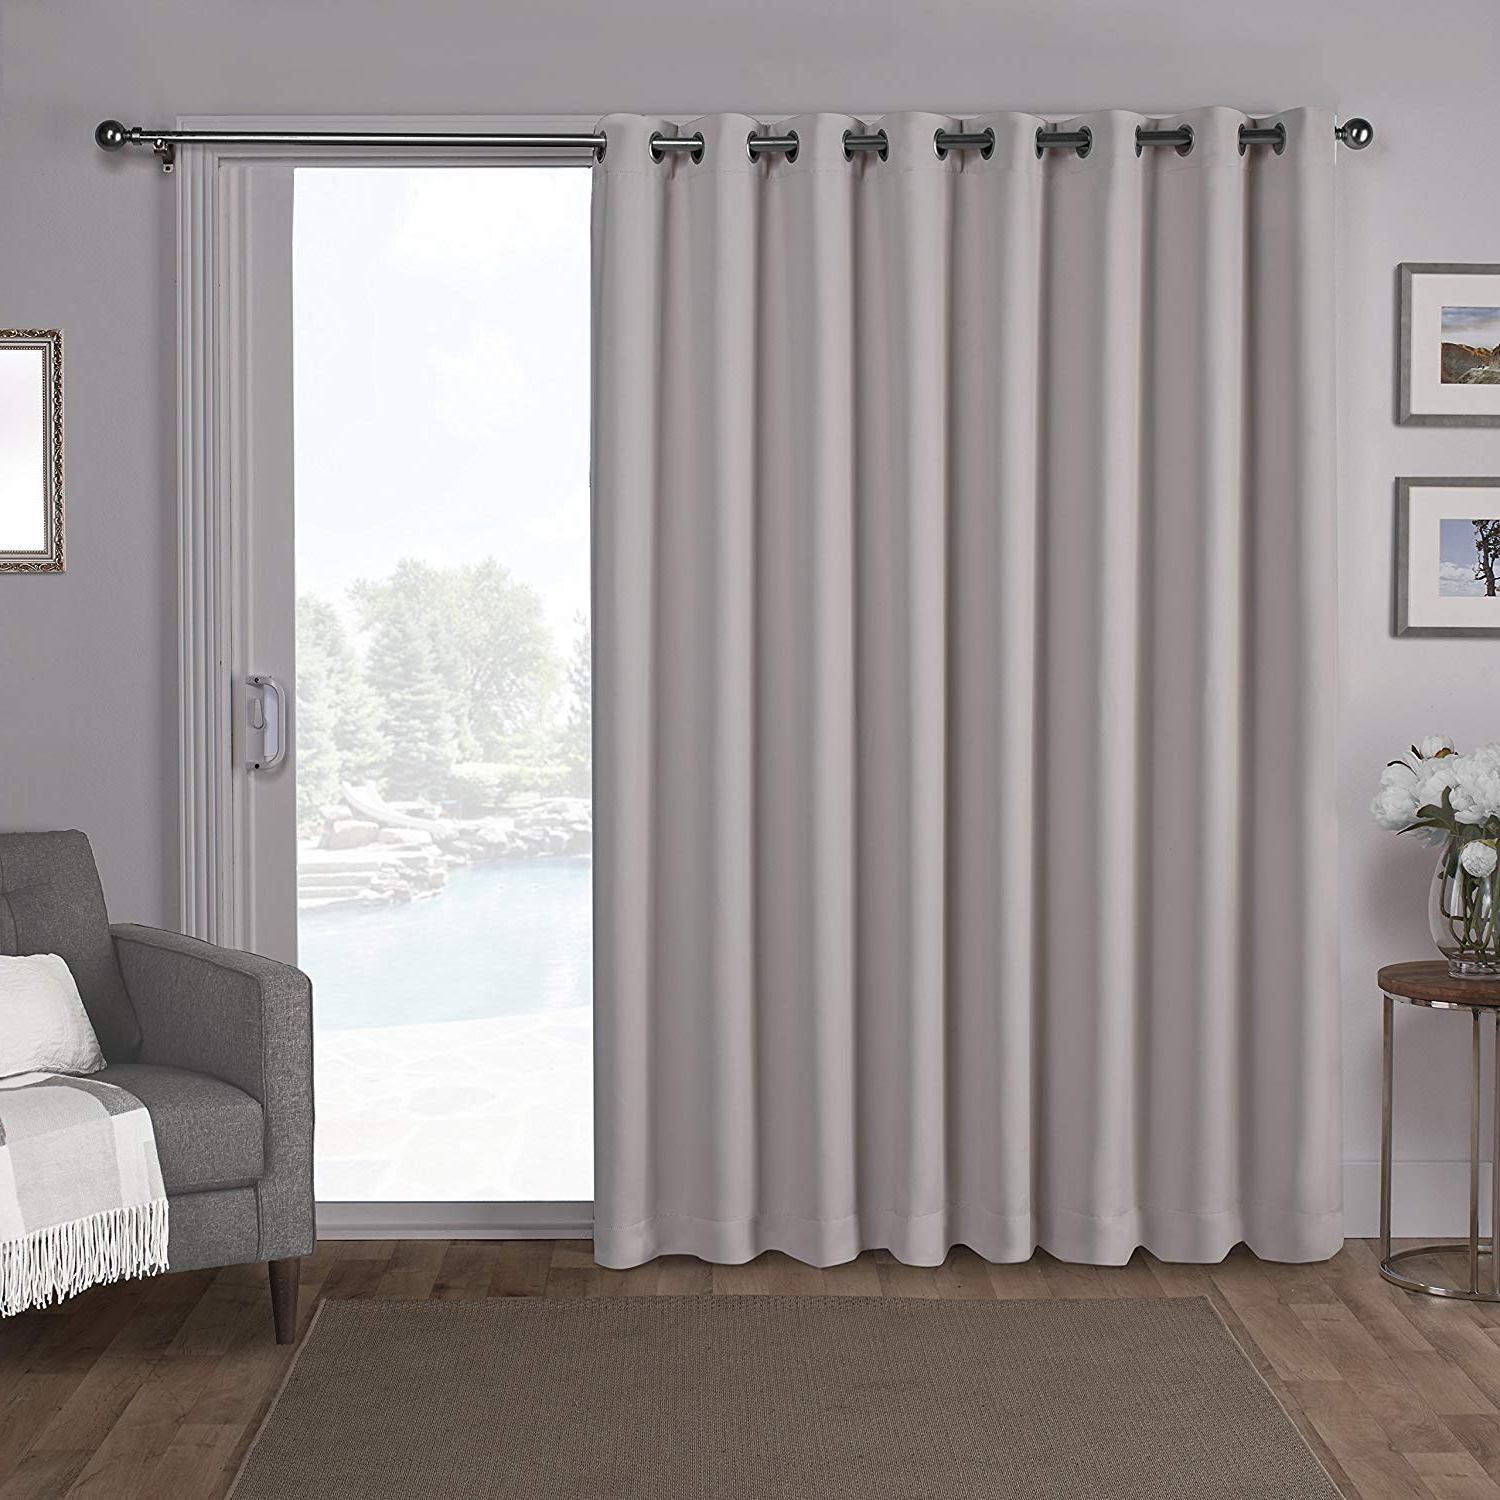 Current Patio Grommet Top Single Curtain Panels Within Exclusive Home Sateen Patio Woven Blackout Grommet Top Single Curtain Panel, Silver, 100x (View 17 of 20)